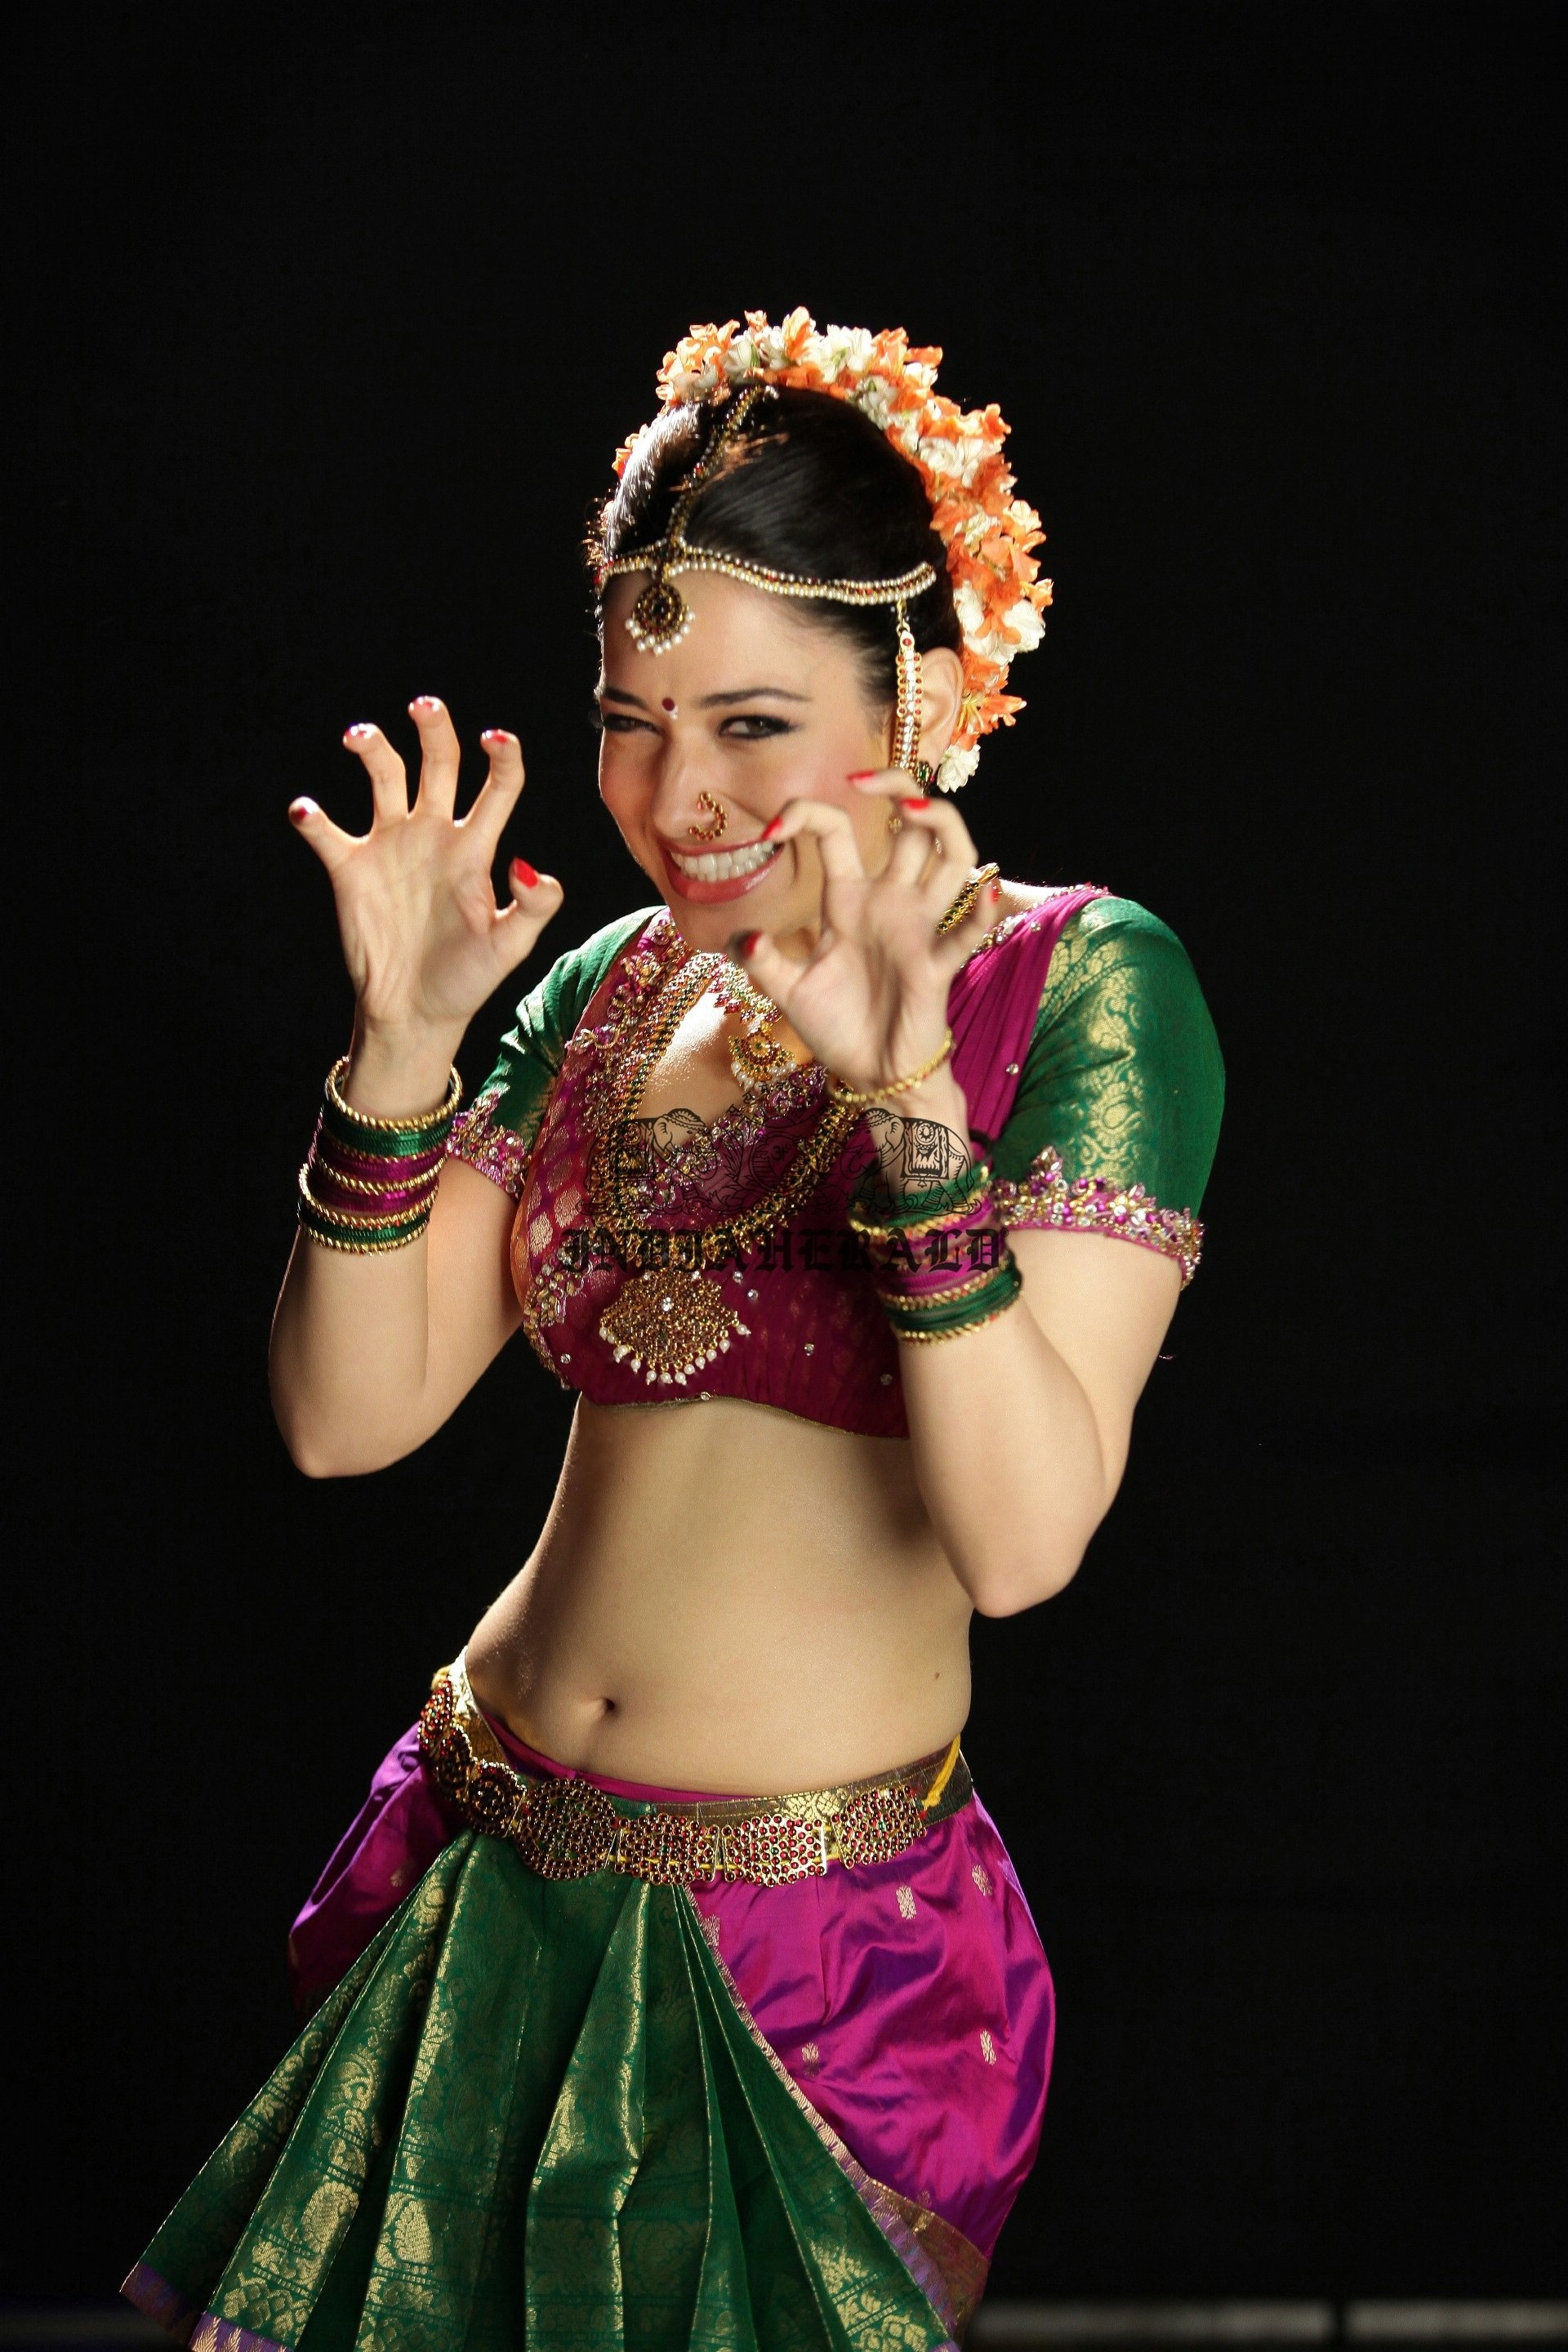 Hottest High Clarity Photos of Tamanna in Saree exposing her navel and midriff Set 3